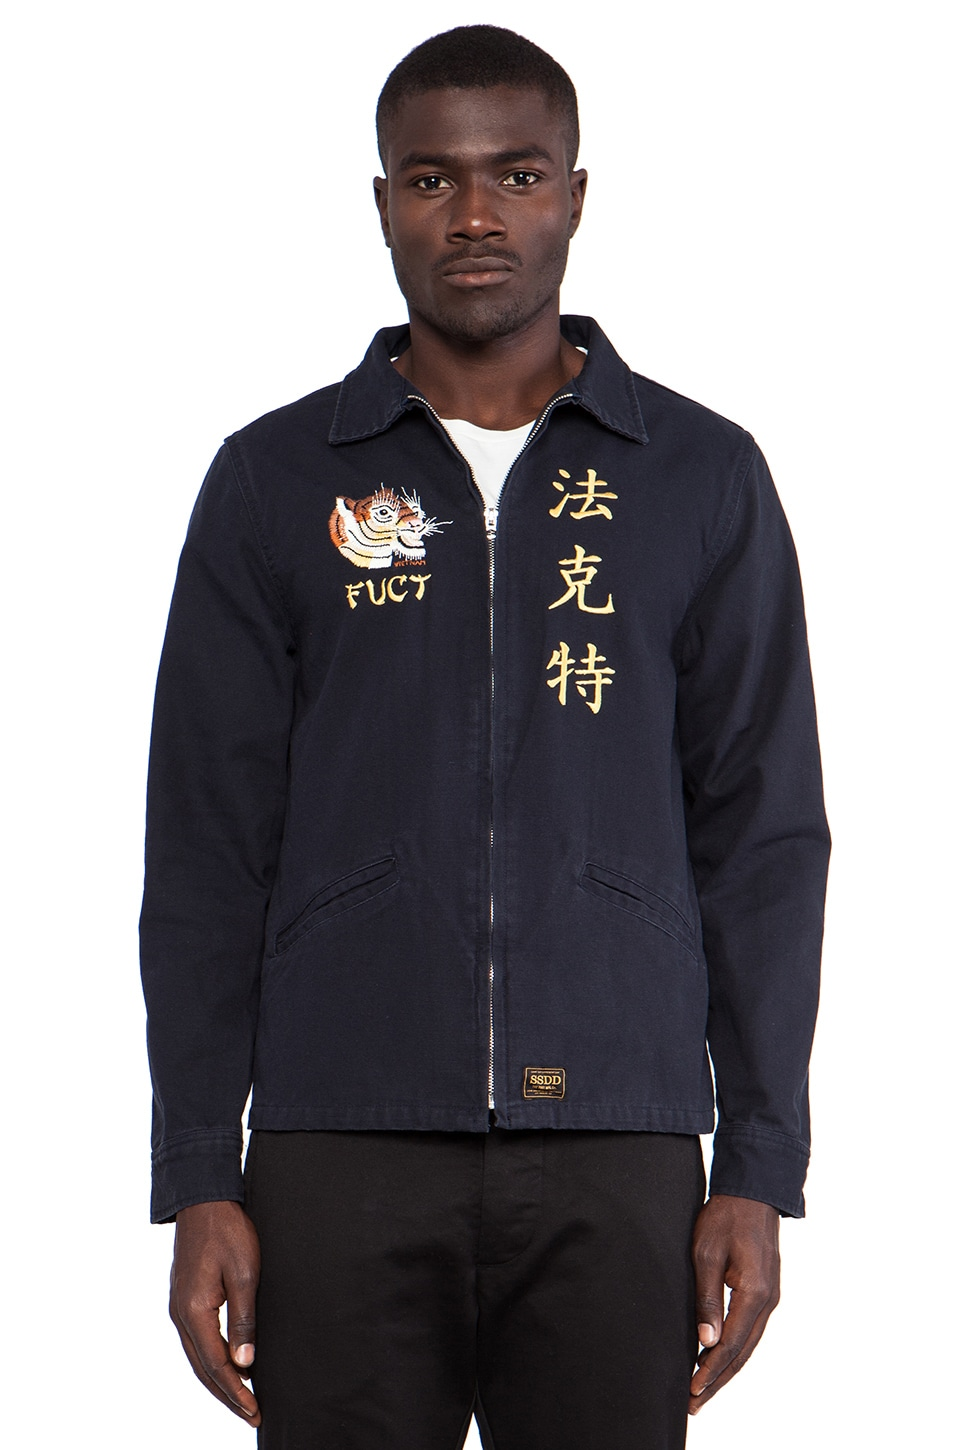 Fuct SSDD CA. Souvenia Jacket in Navy